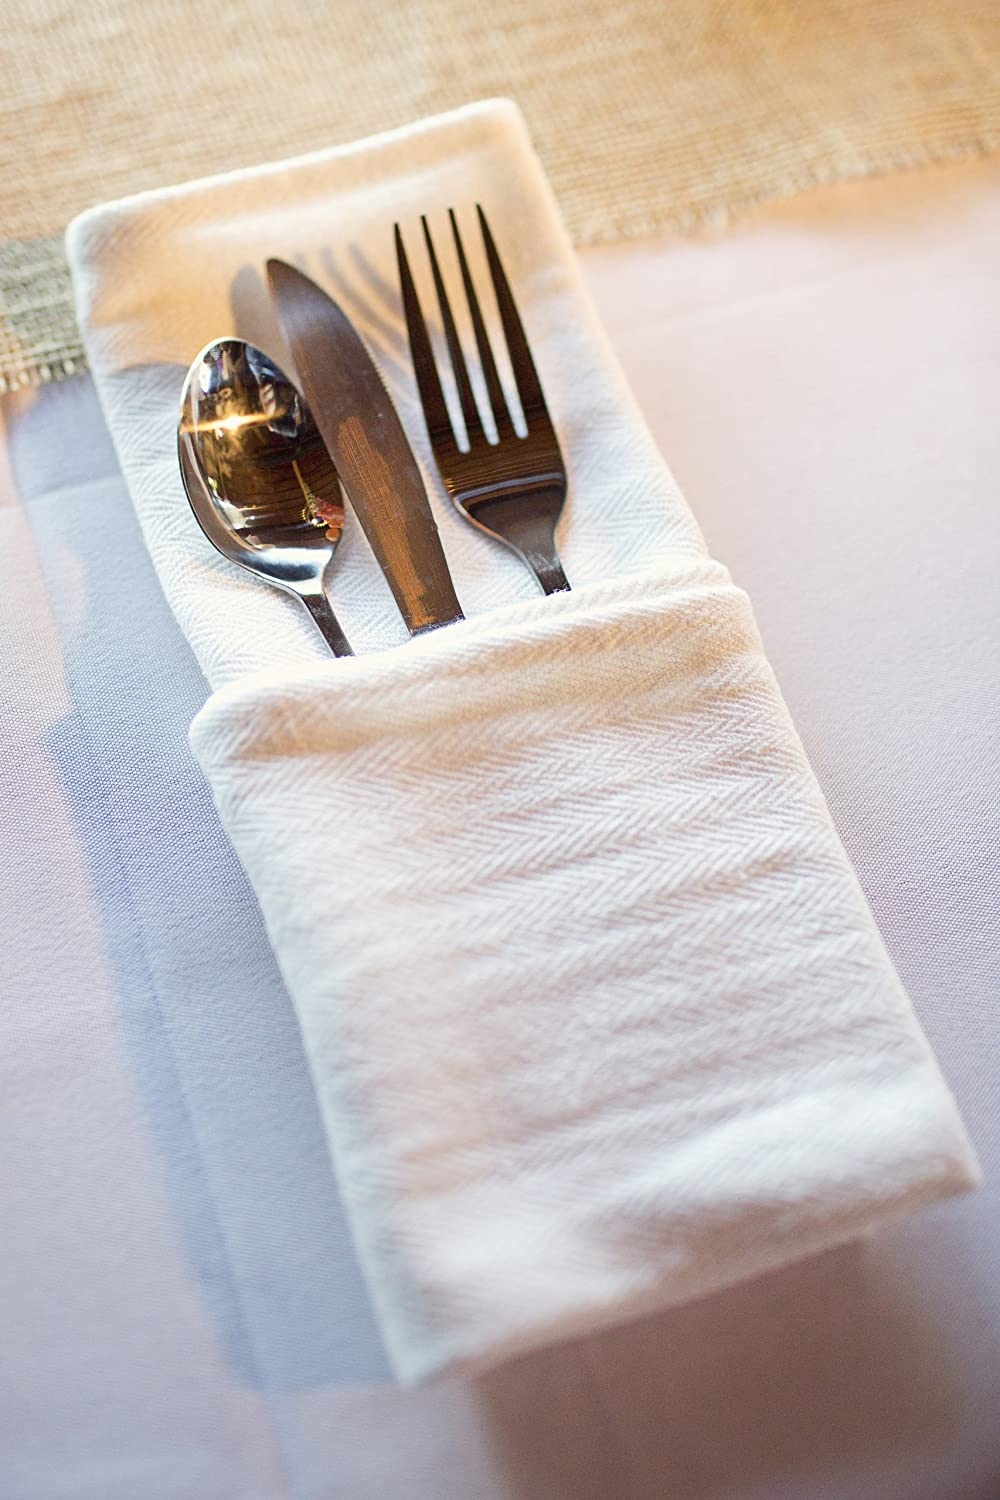 Keeble Outlets One Dozen (12) Kitchen Dish Towels - White - High ...